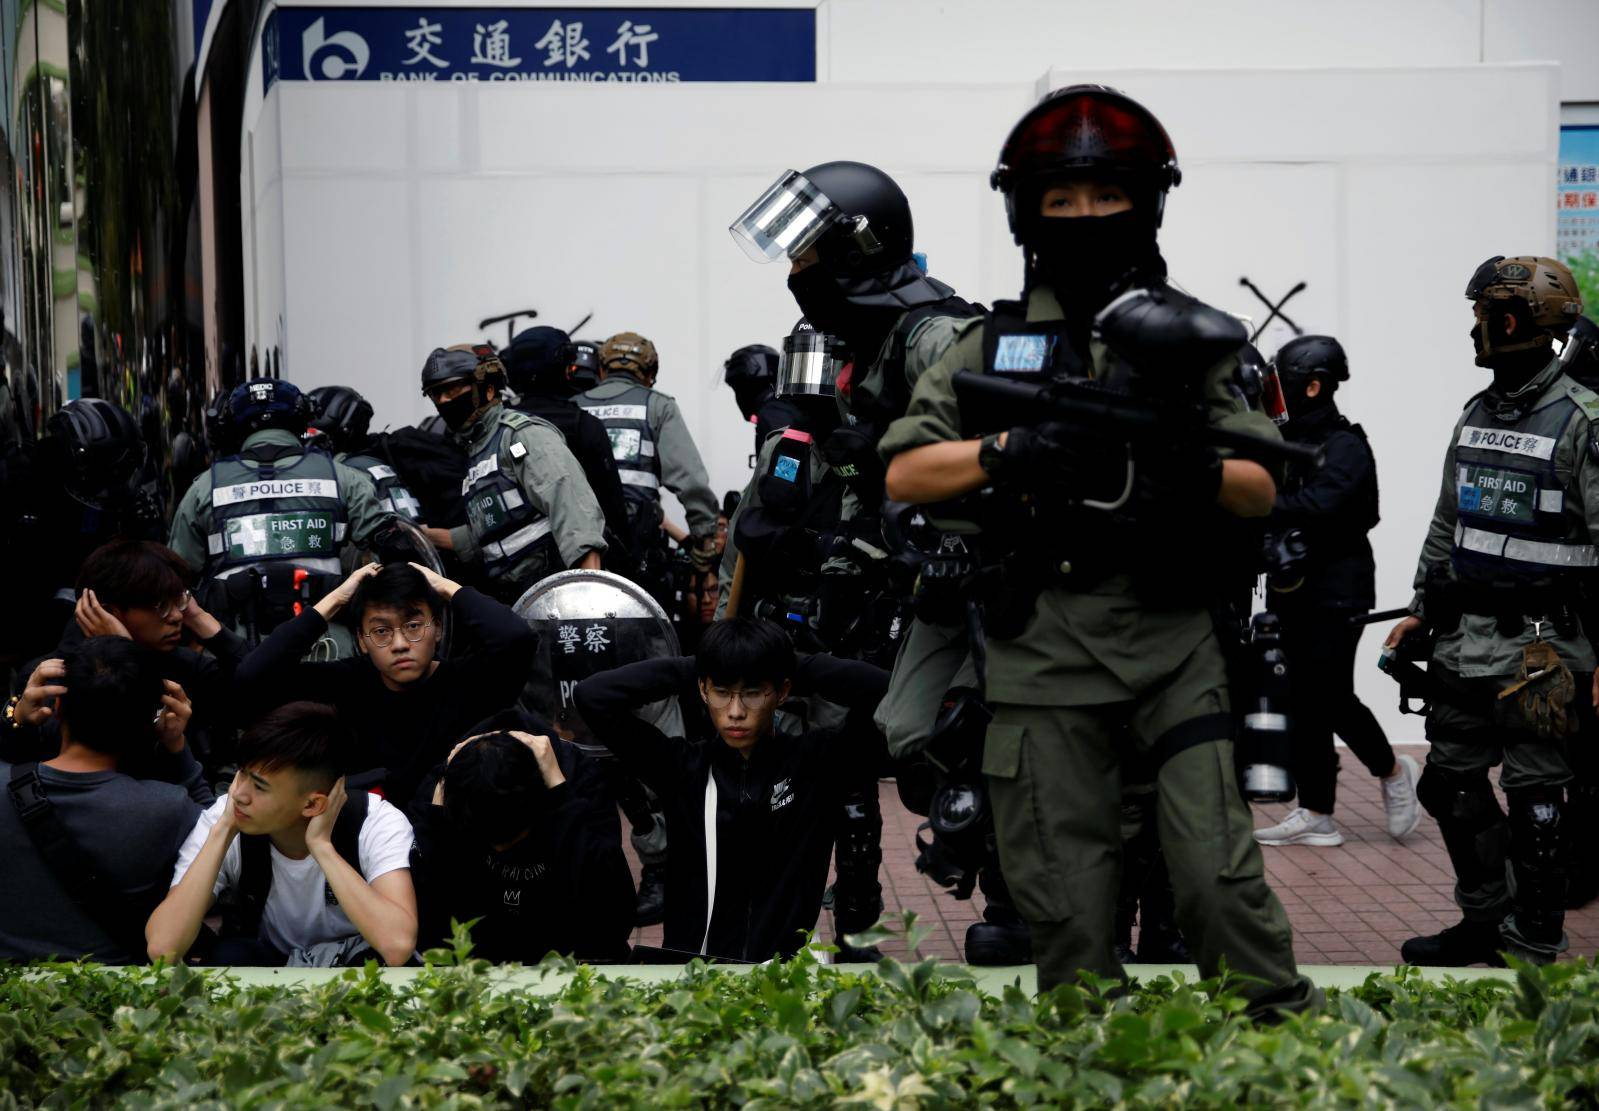 Police detain anti-government protesters after an anti-parallel trading protest at Sheung Shui, a border town in Hong Kong